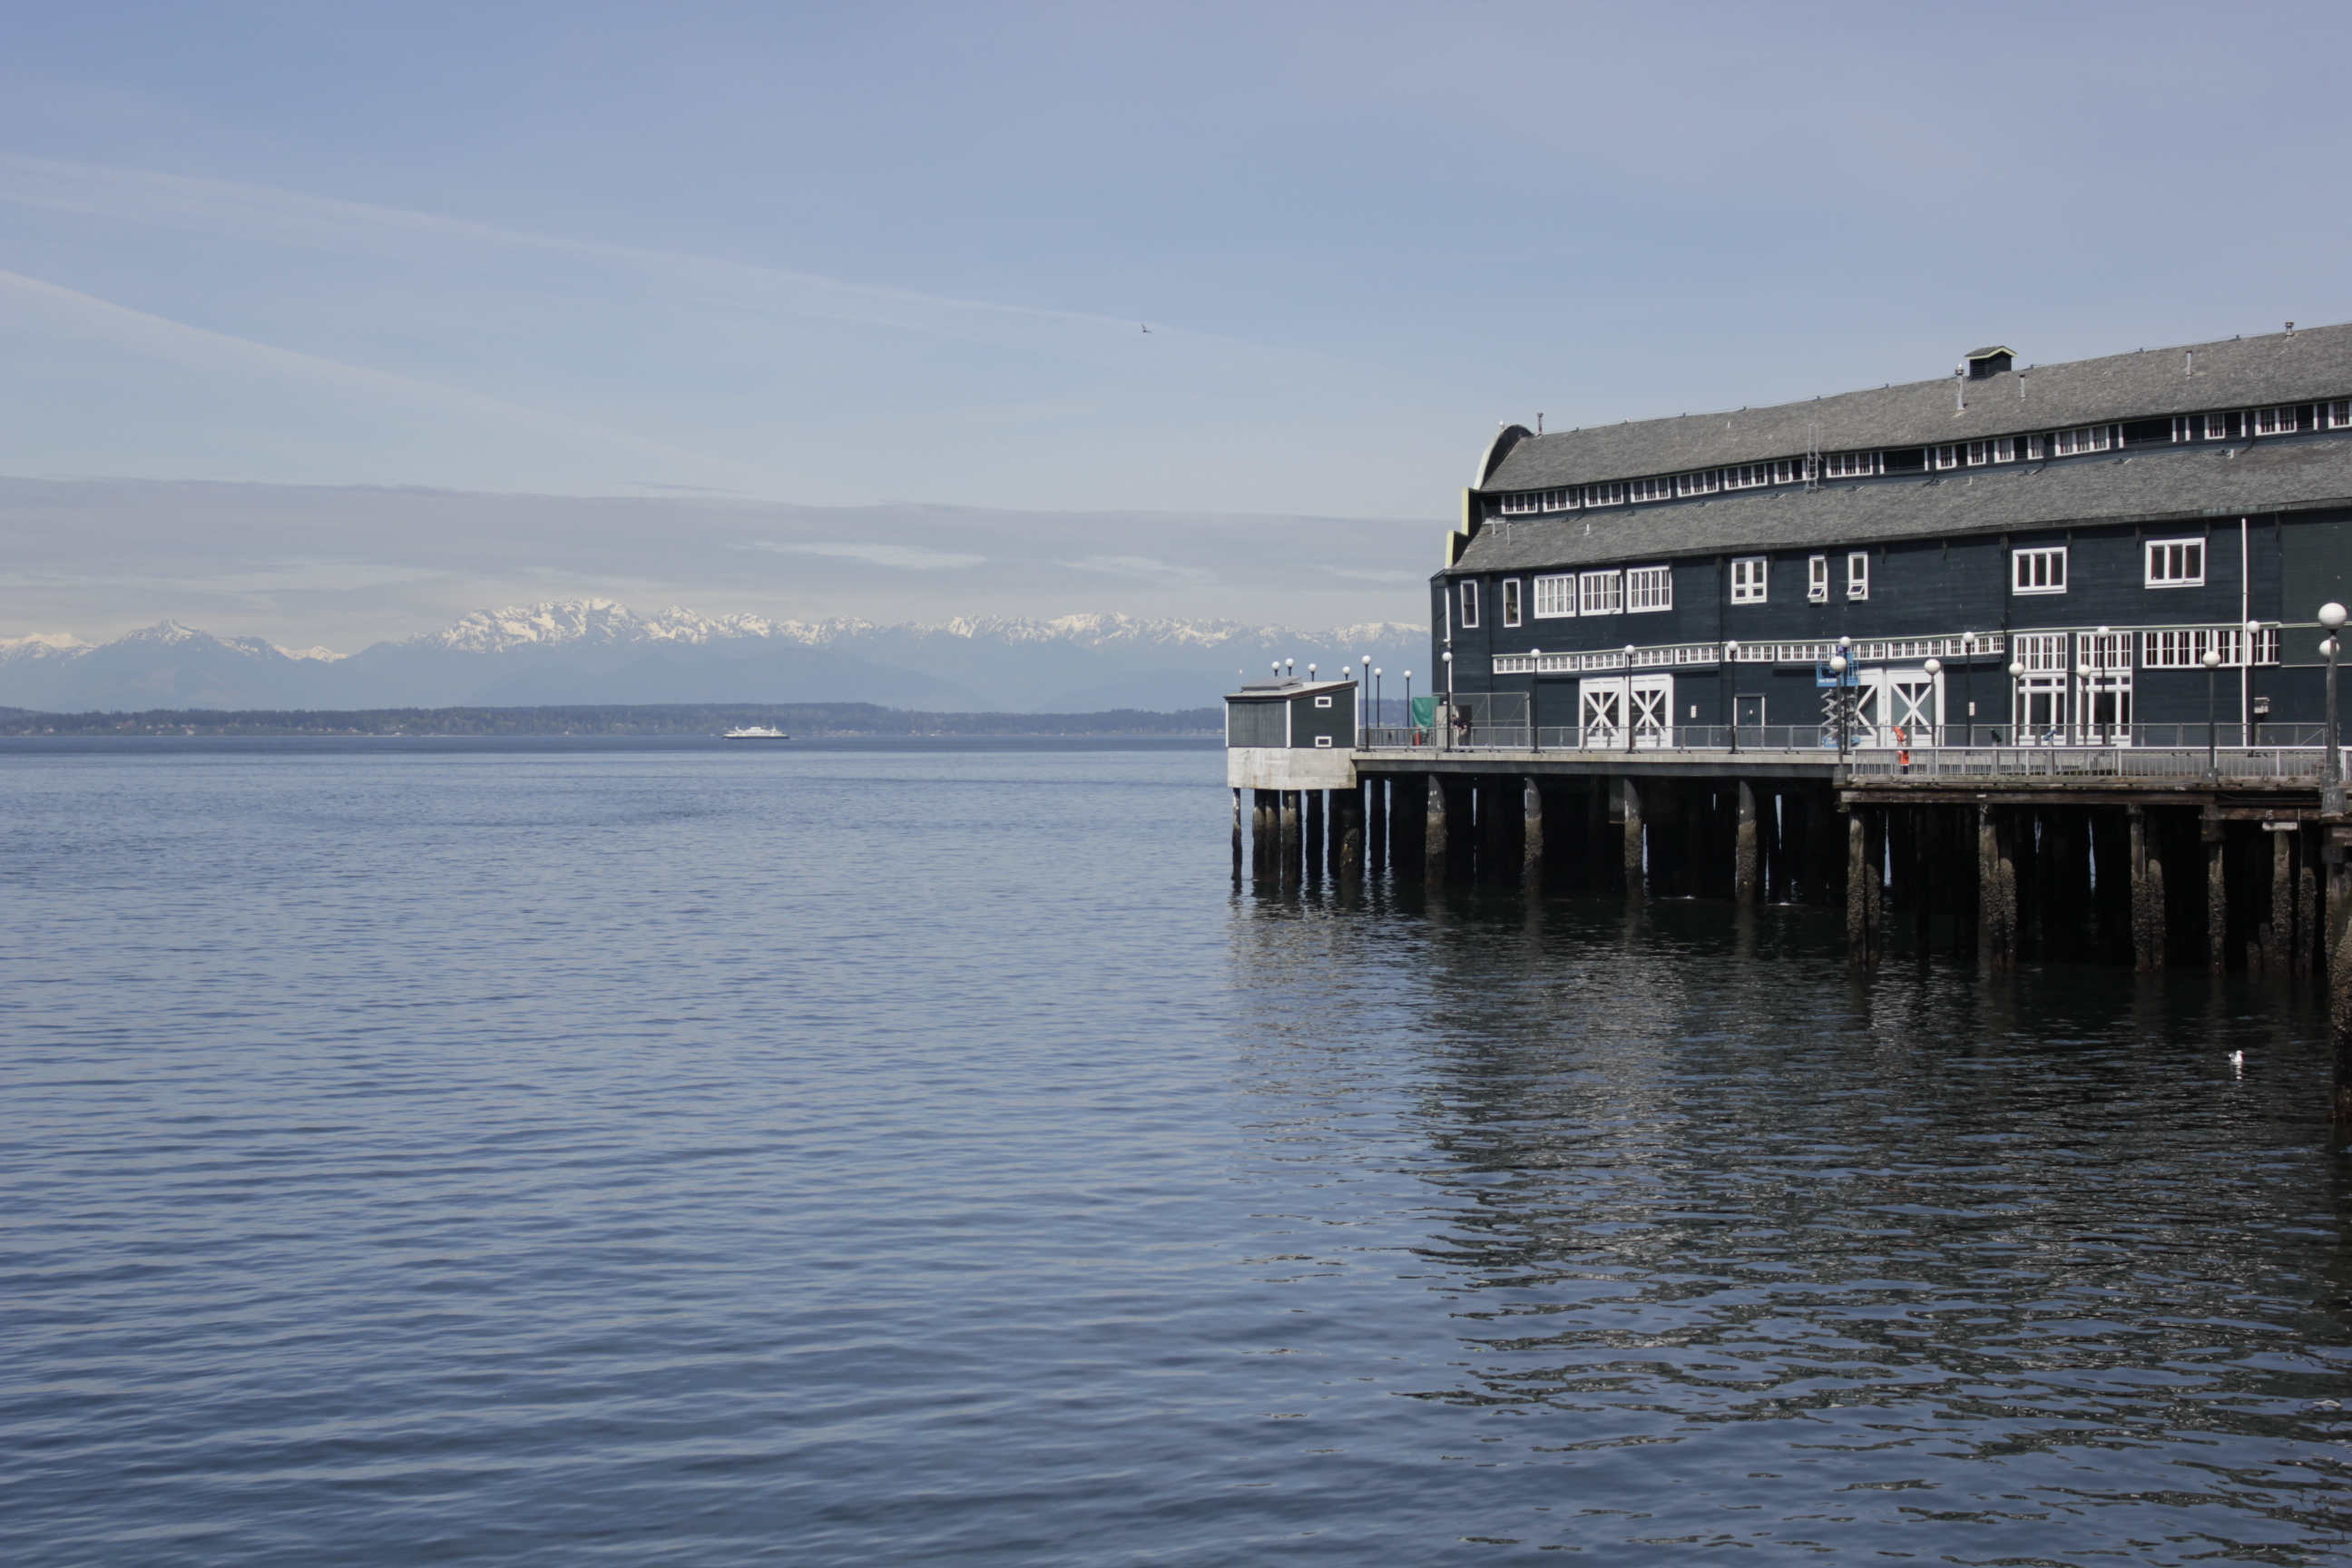 Caption: Pier at the Seattle Waterfront., Credit: Hillary Sanders